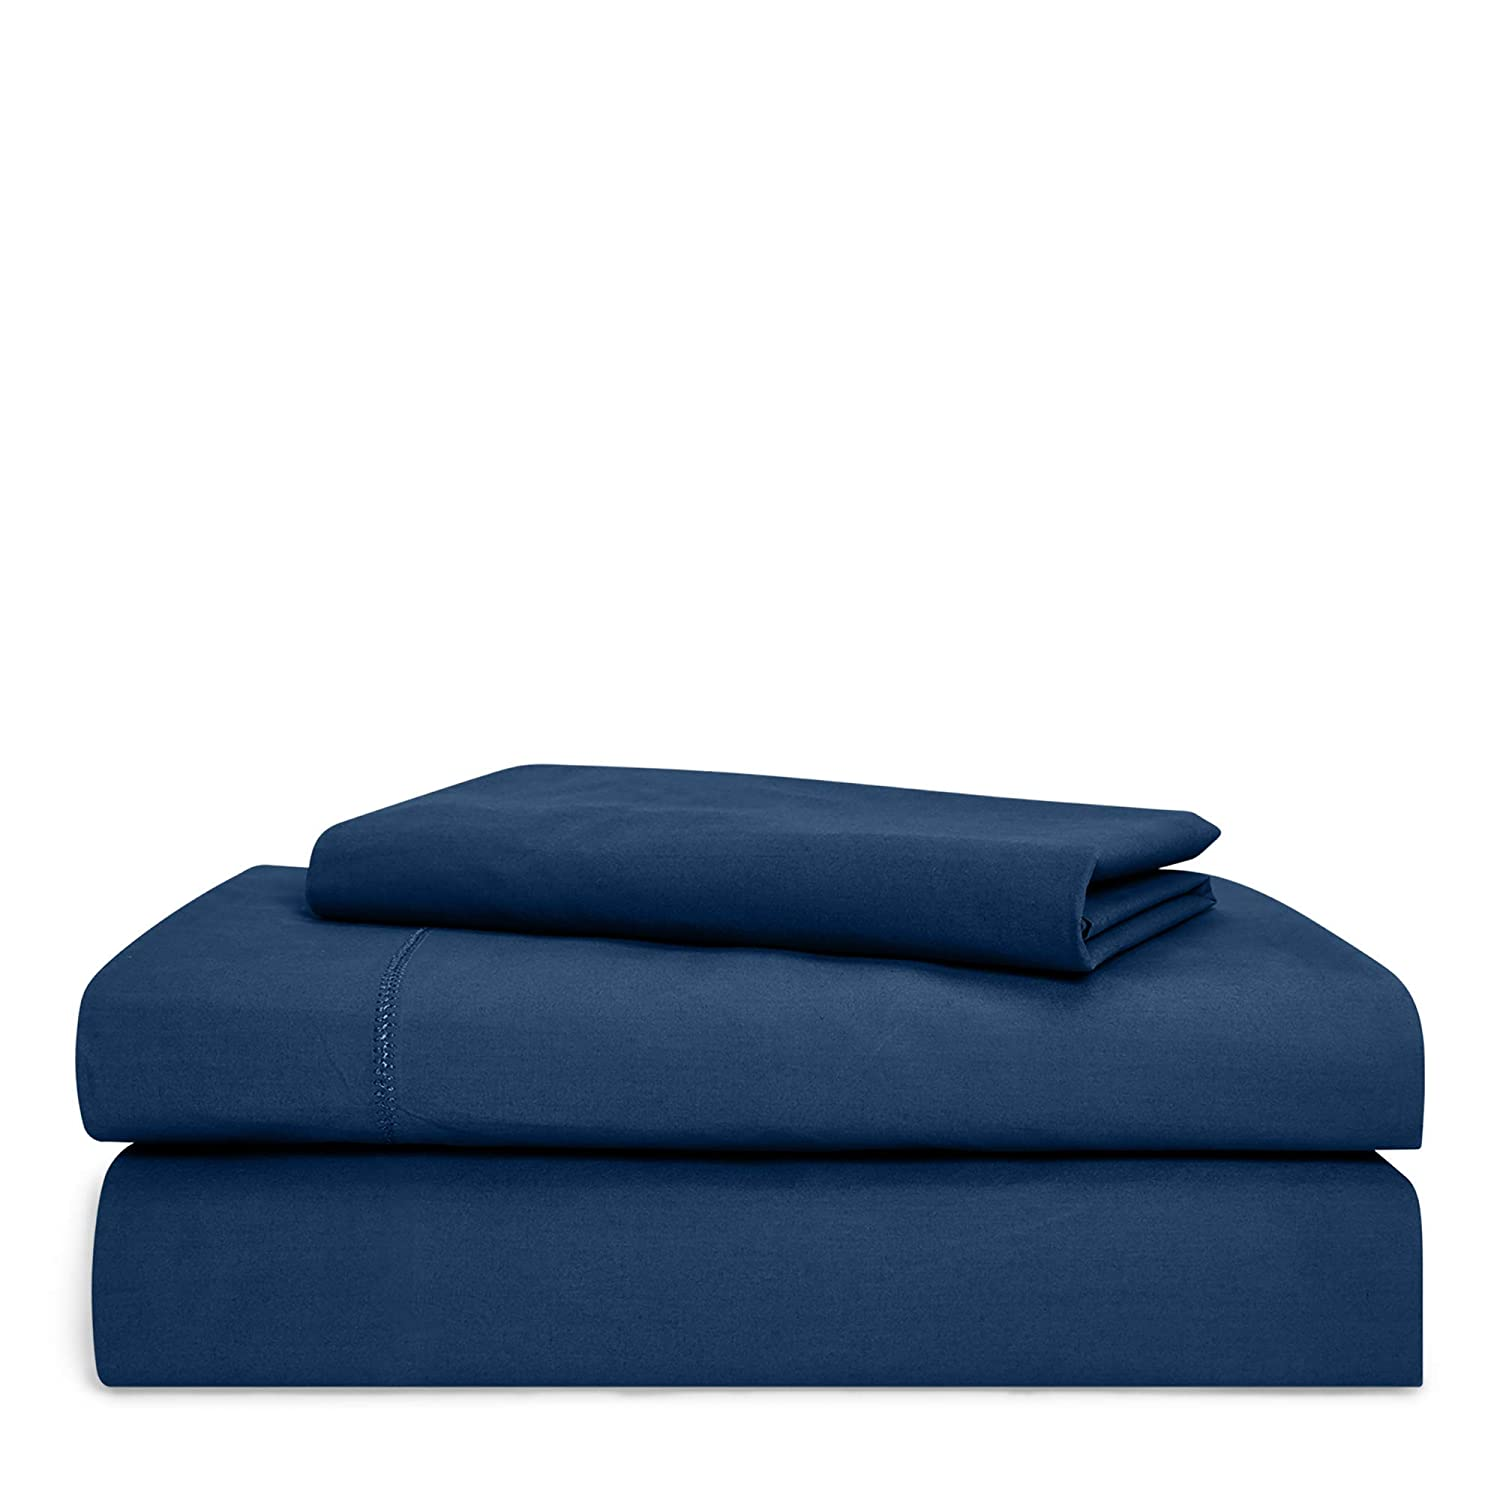 Chaps Home Rivington 100% Cotton Solid Brushed 200 Thread Count Bed Sheet Set-15 Inches Pocket (Queen), DEEP Navy